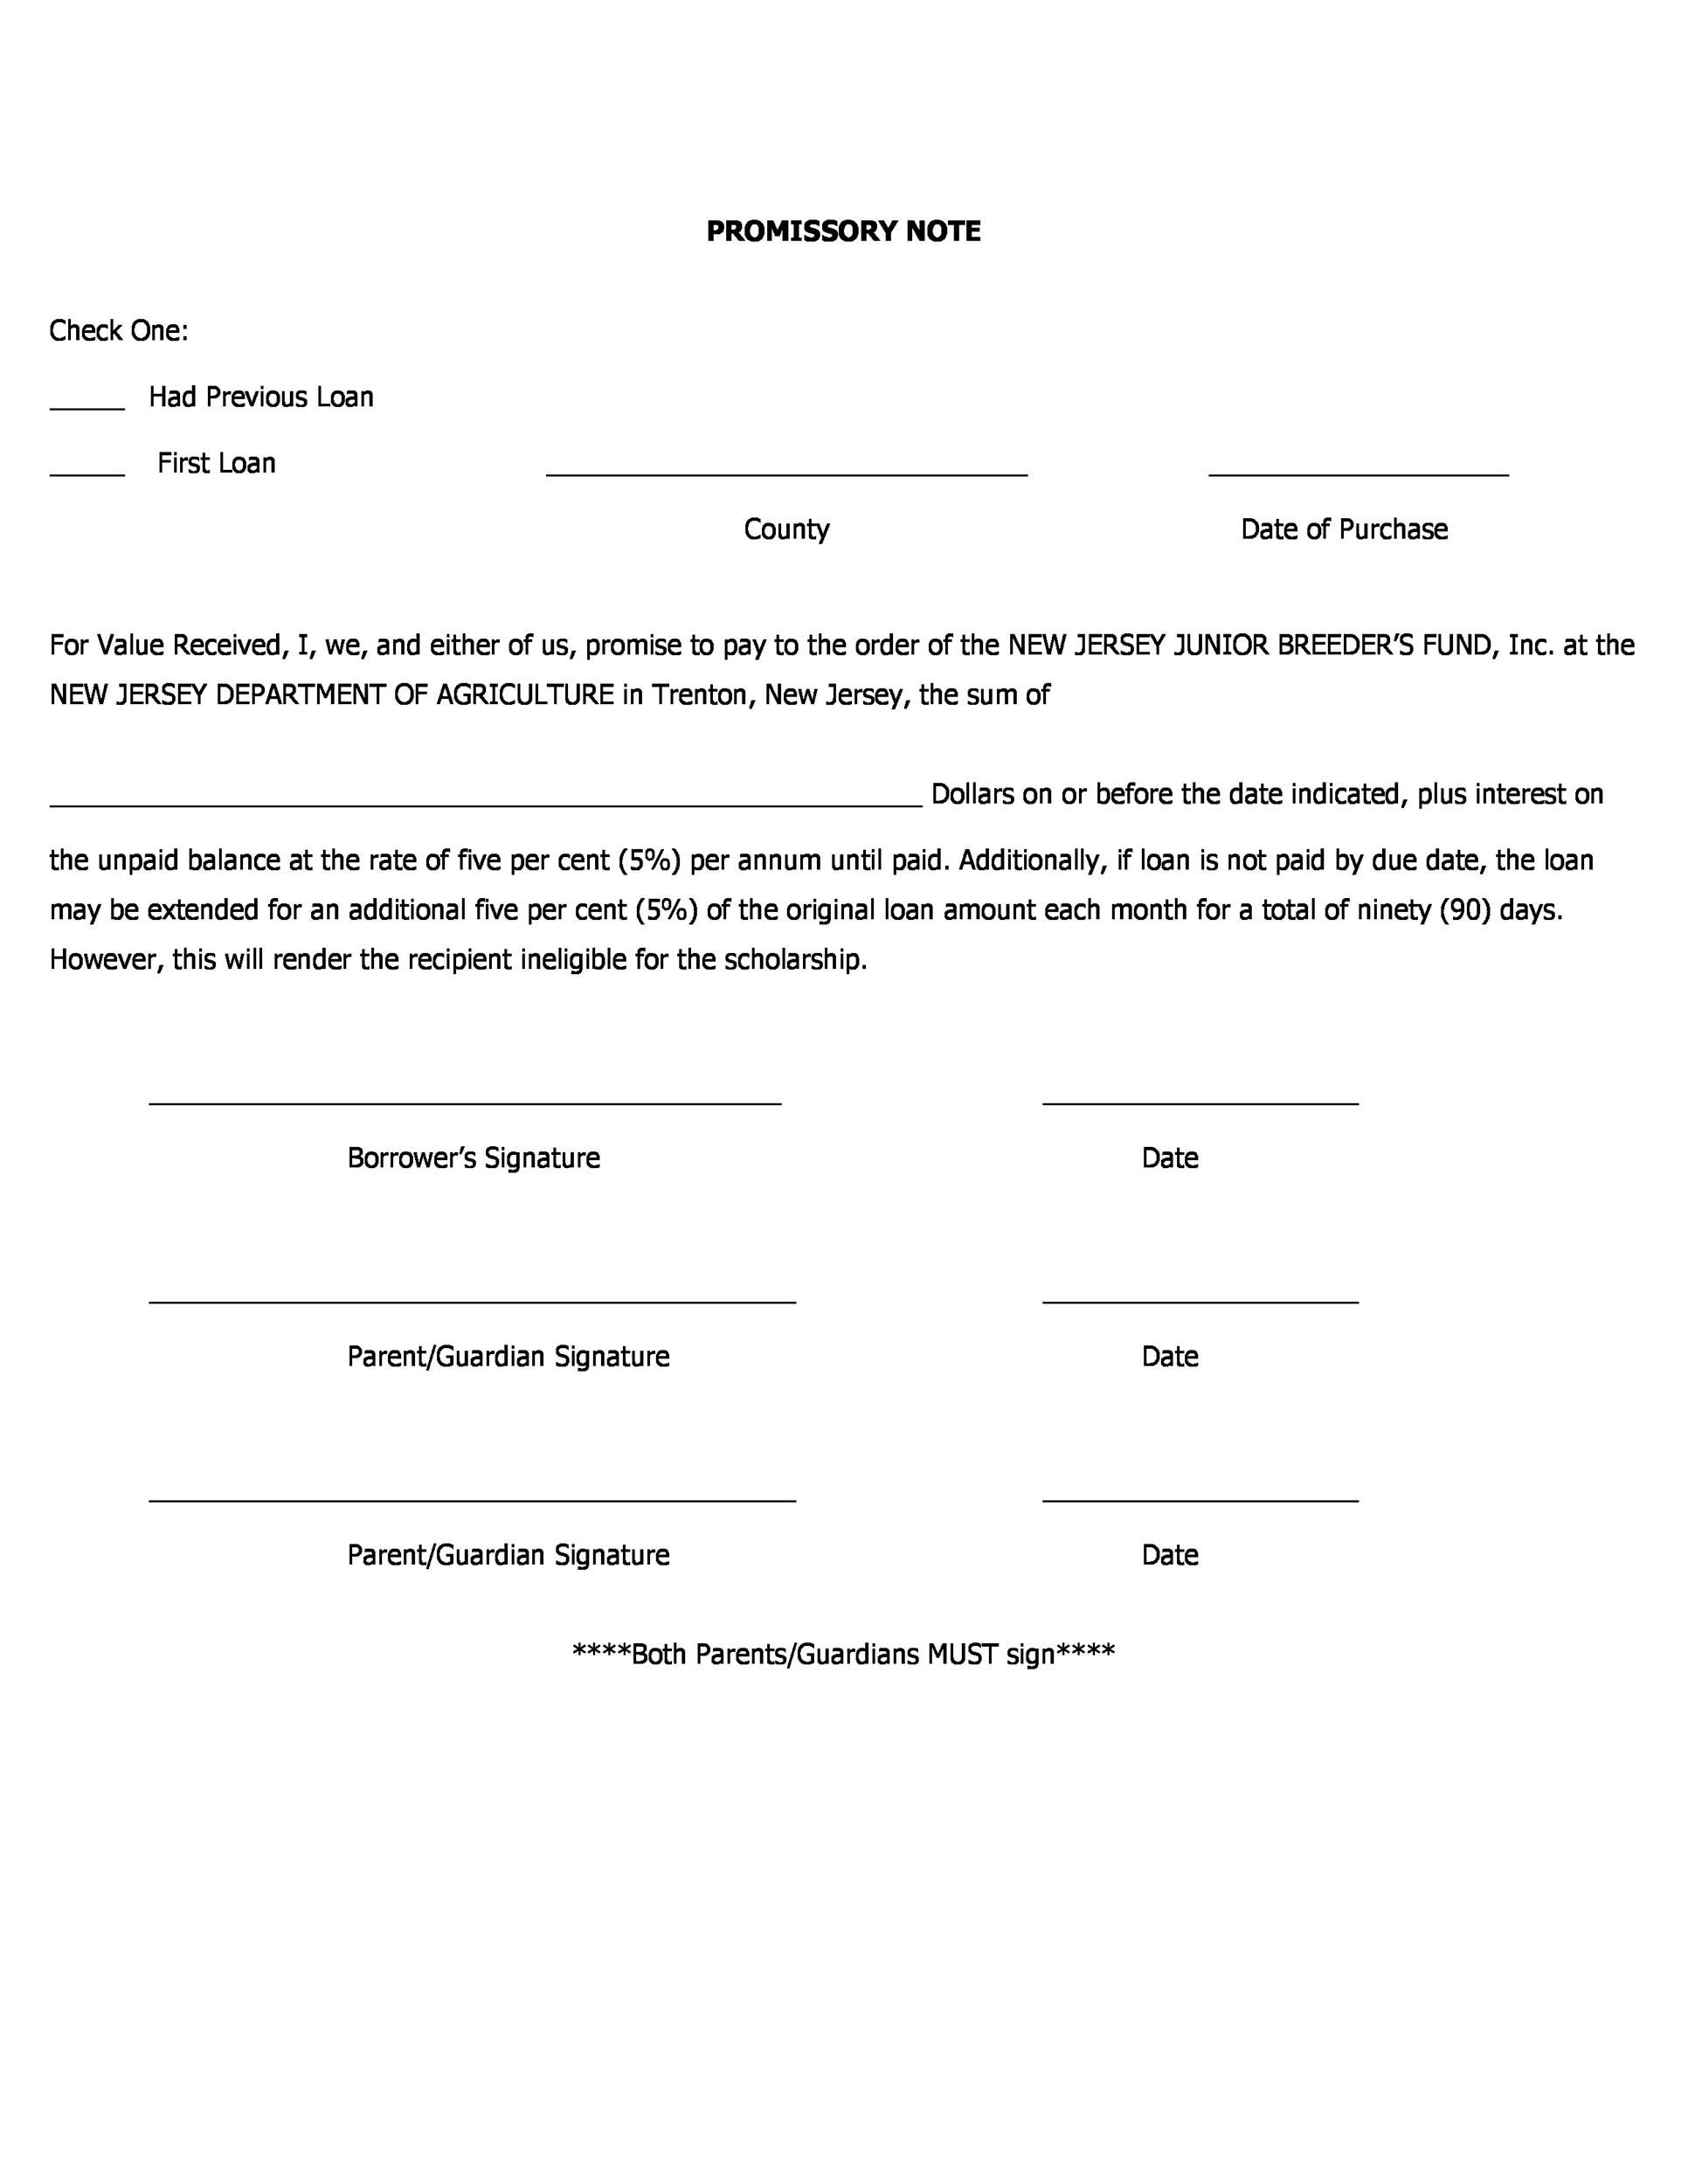 Printable Promissory Note Template 31  Free Download Promissory Note